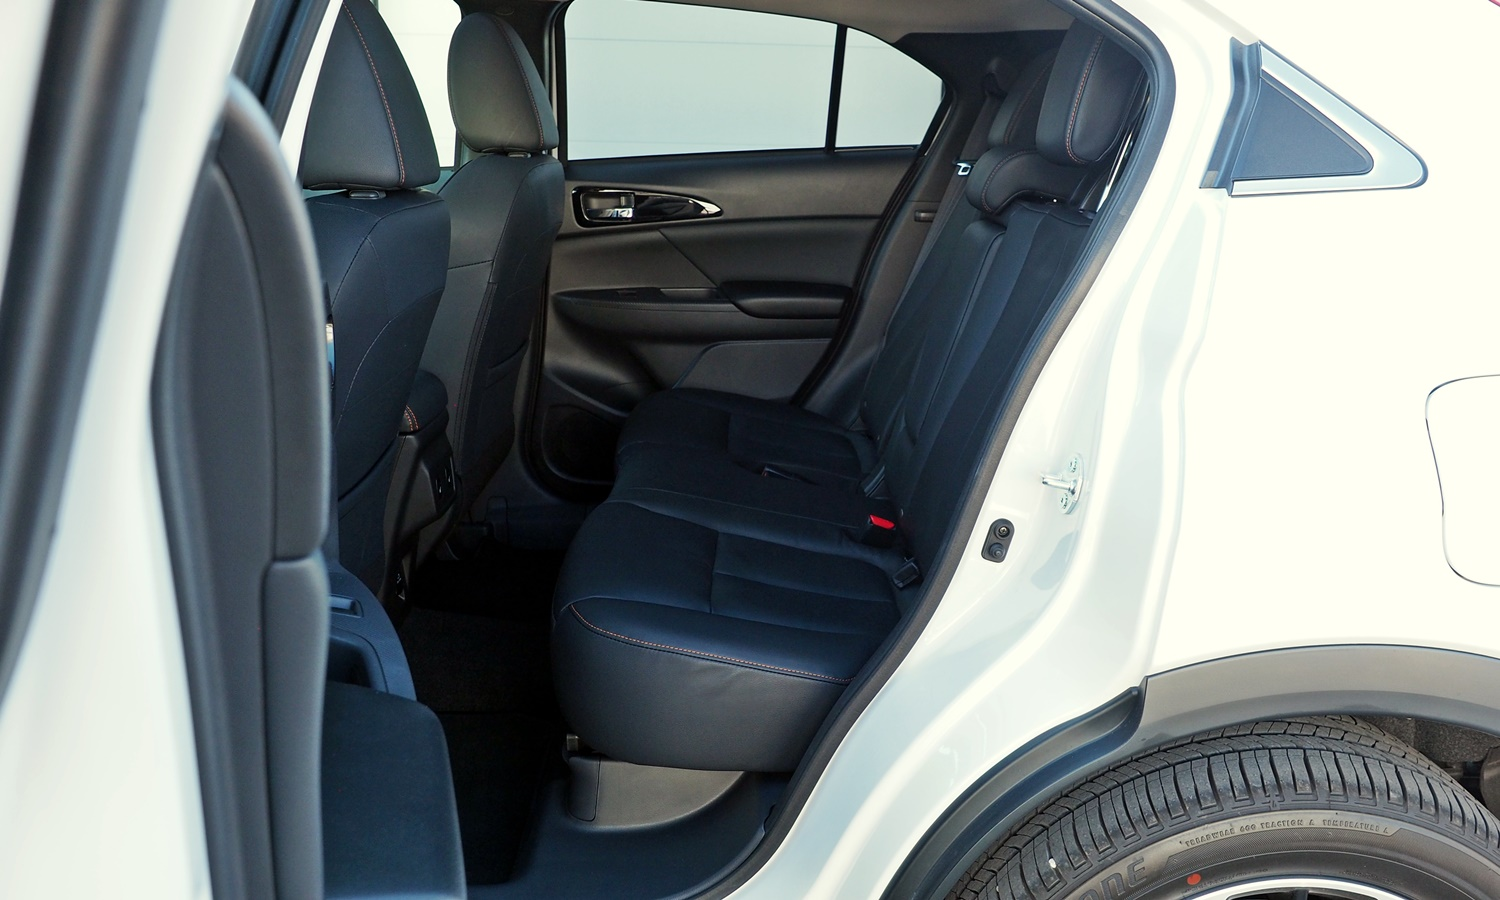 Mitsubishi Eclipse Cross Photos: 2018 Mitsubishi Eclipse Cross rear seat